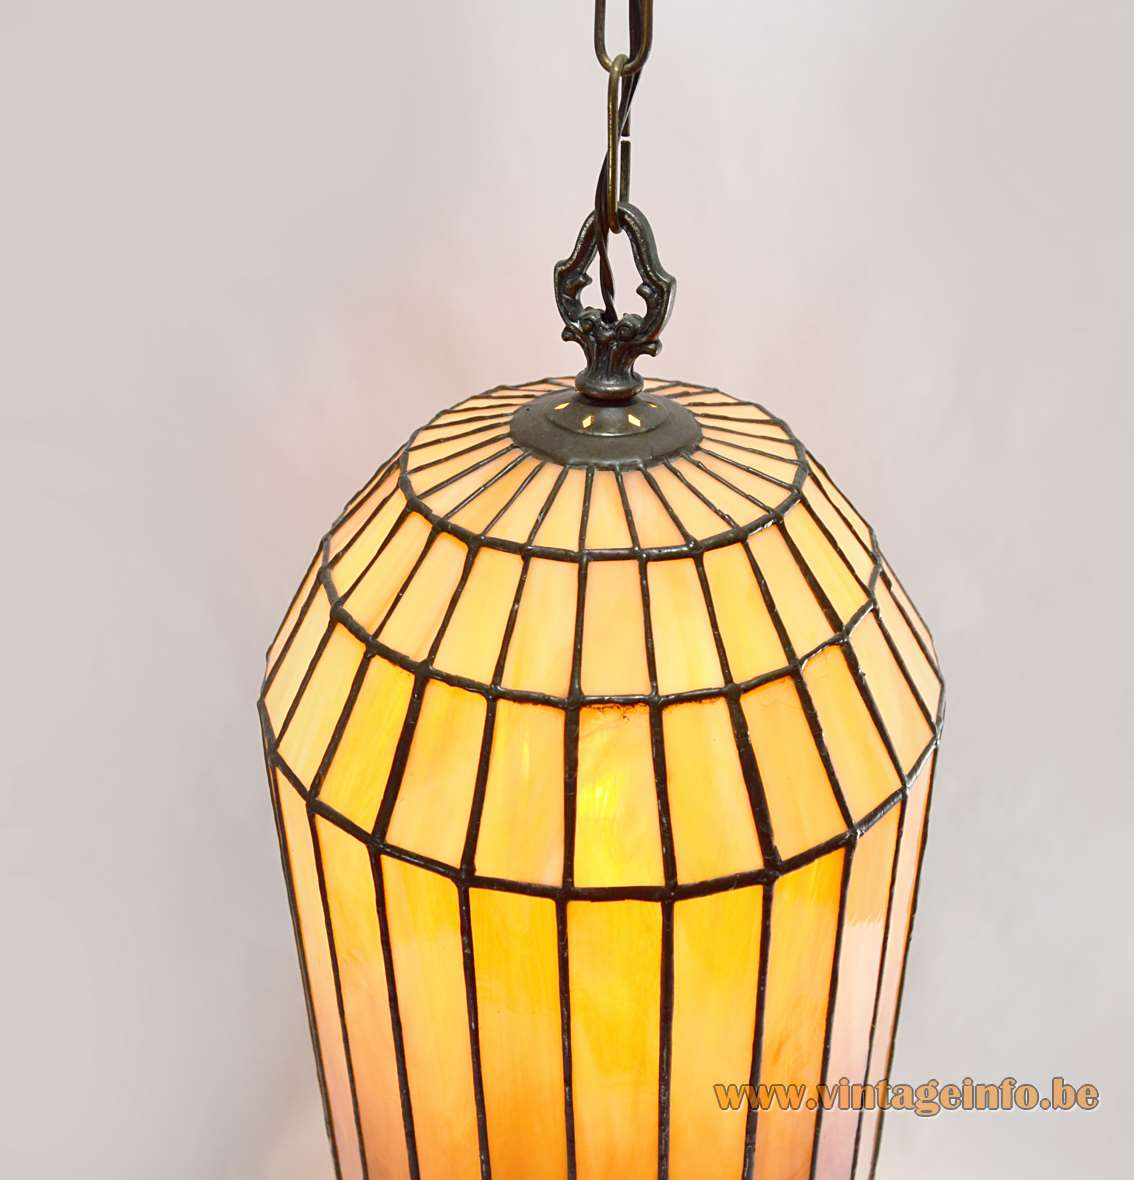 Art Deco Stained Glass Pendant Lamp cut orange tongues flamed 1920s 1930s 1940s